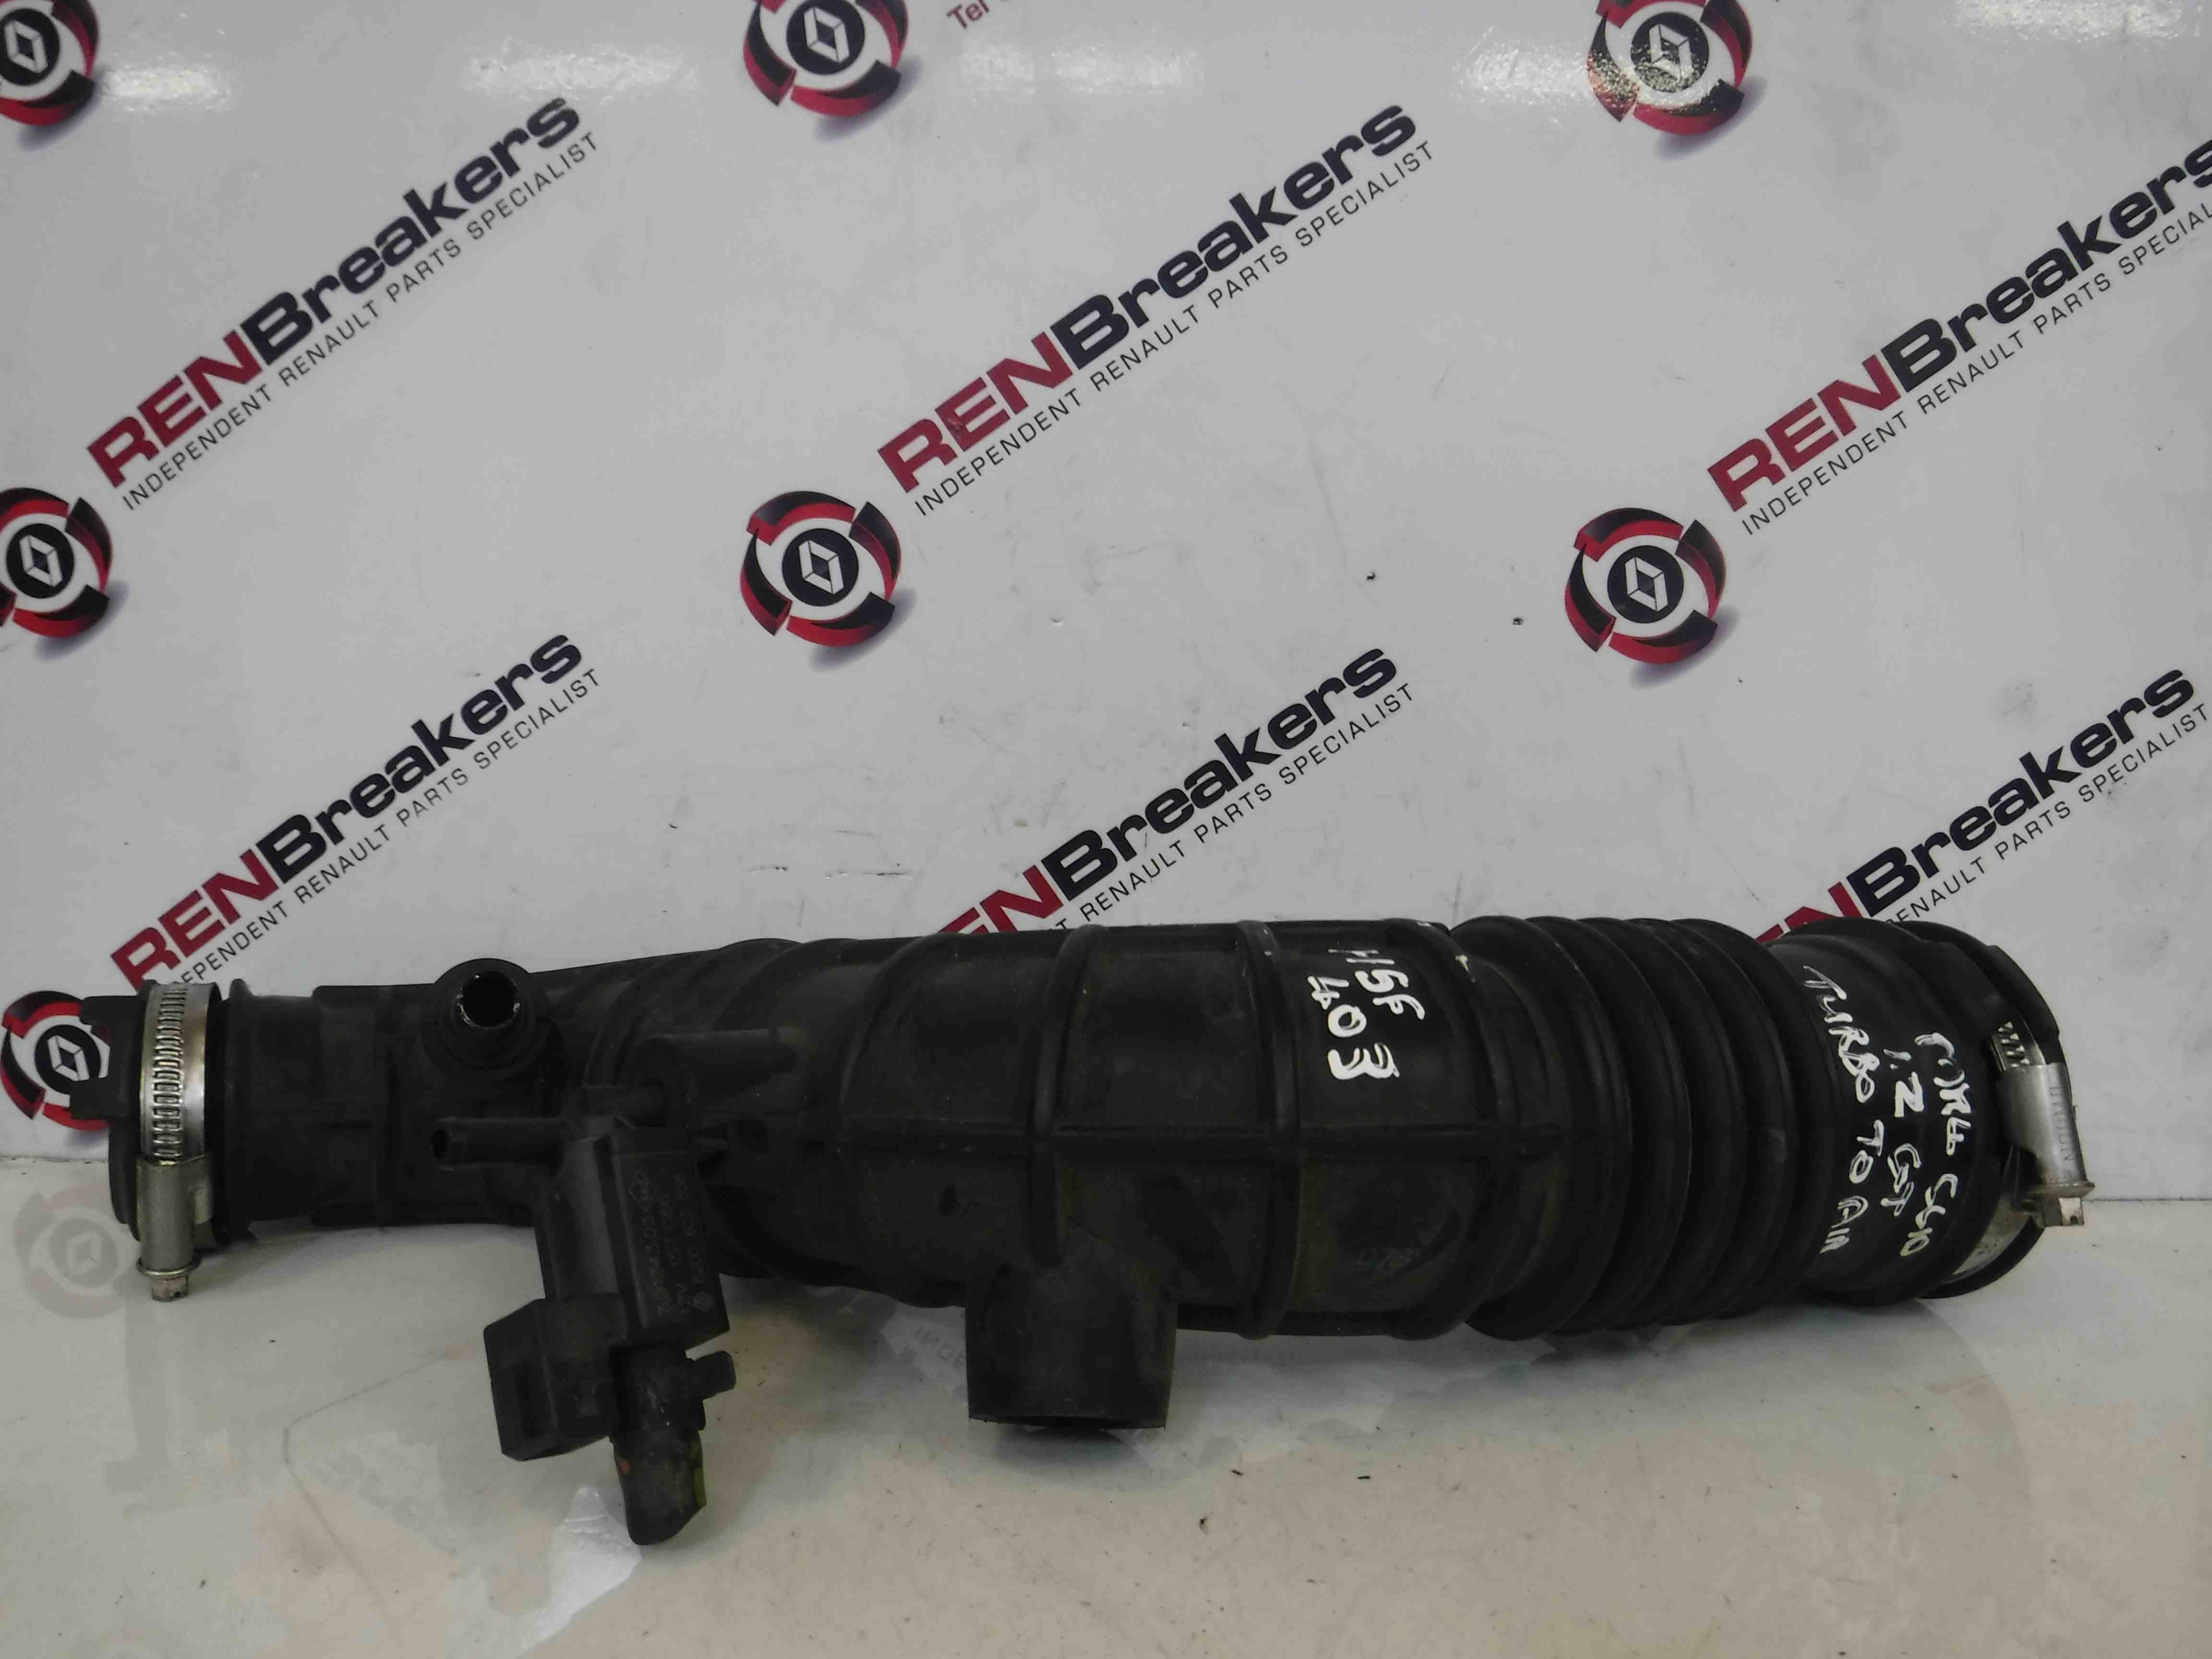 Renault Clio MK4 2013-2015 1.2 Turbo To Airbox Pipe H5FT 412